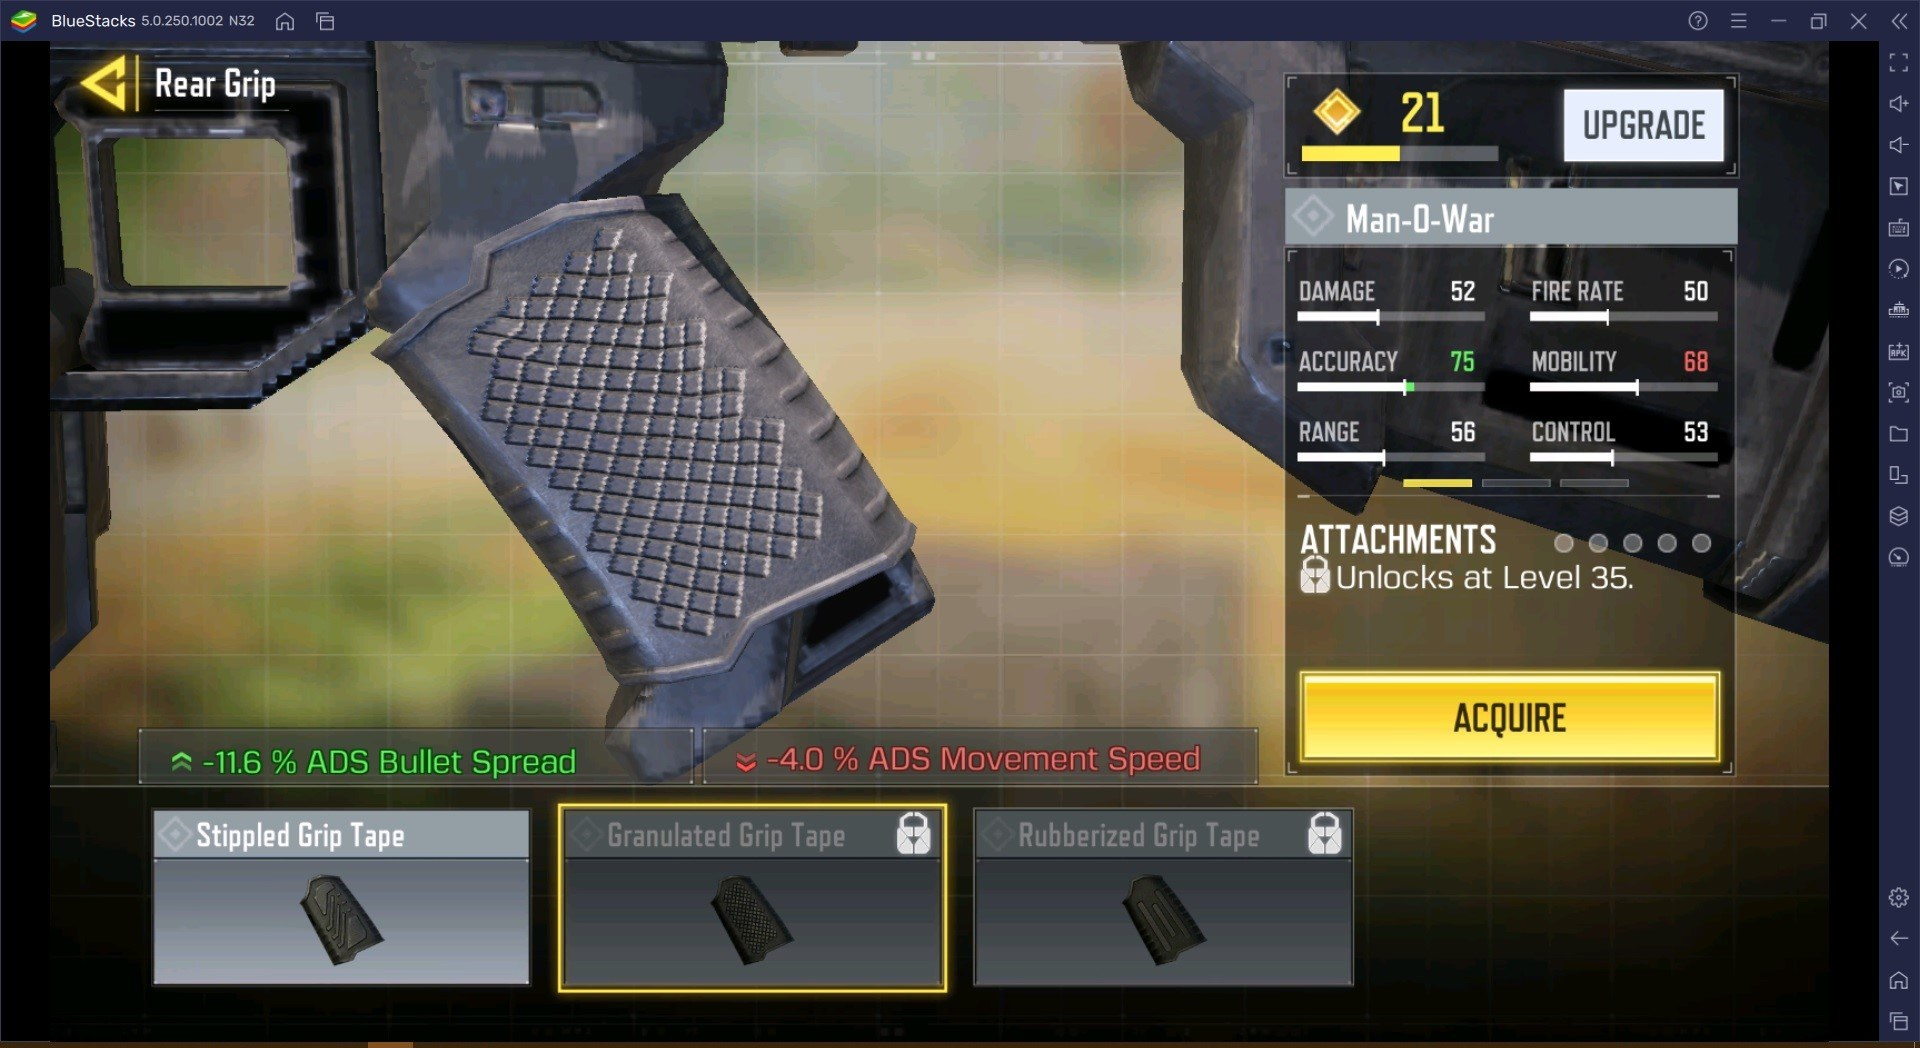 Call of Duty Mobile Man-O-War Weapon Guide for Season 5